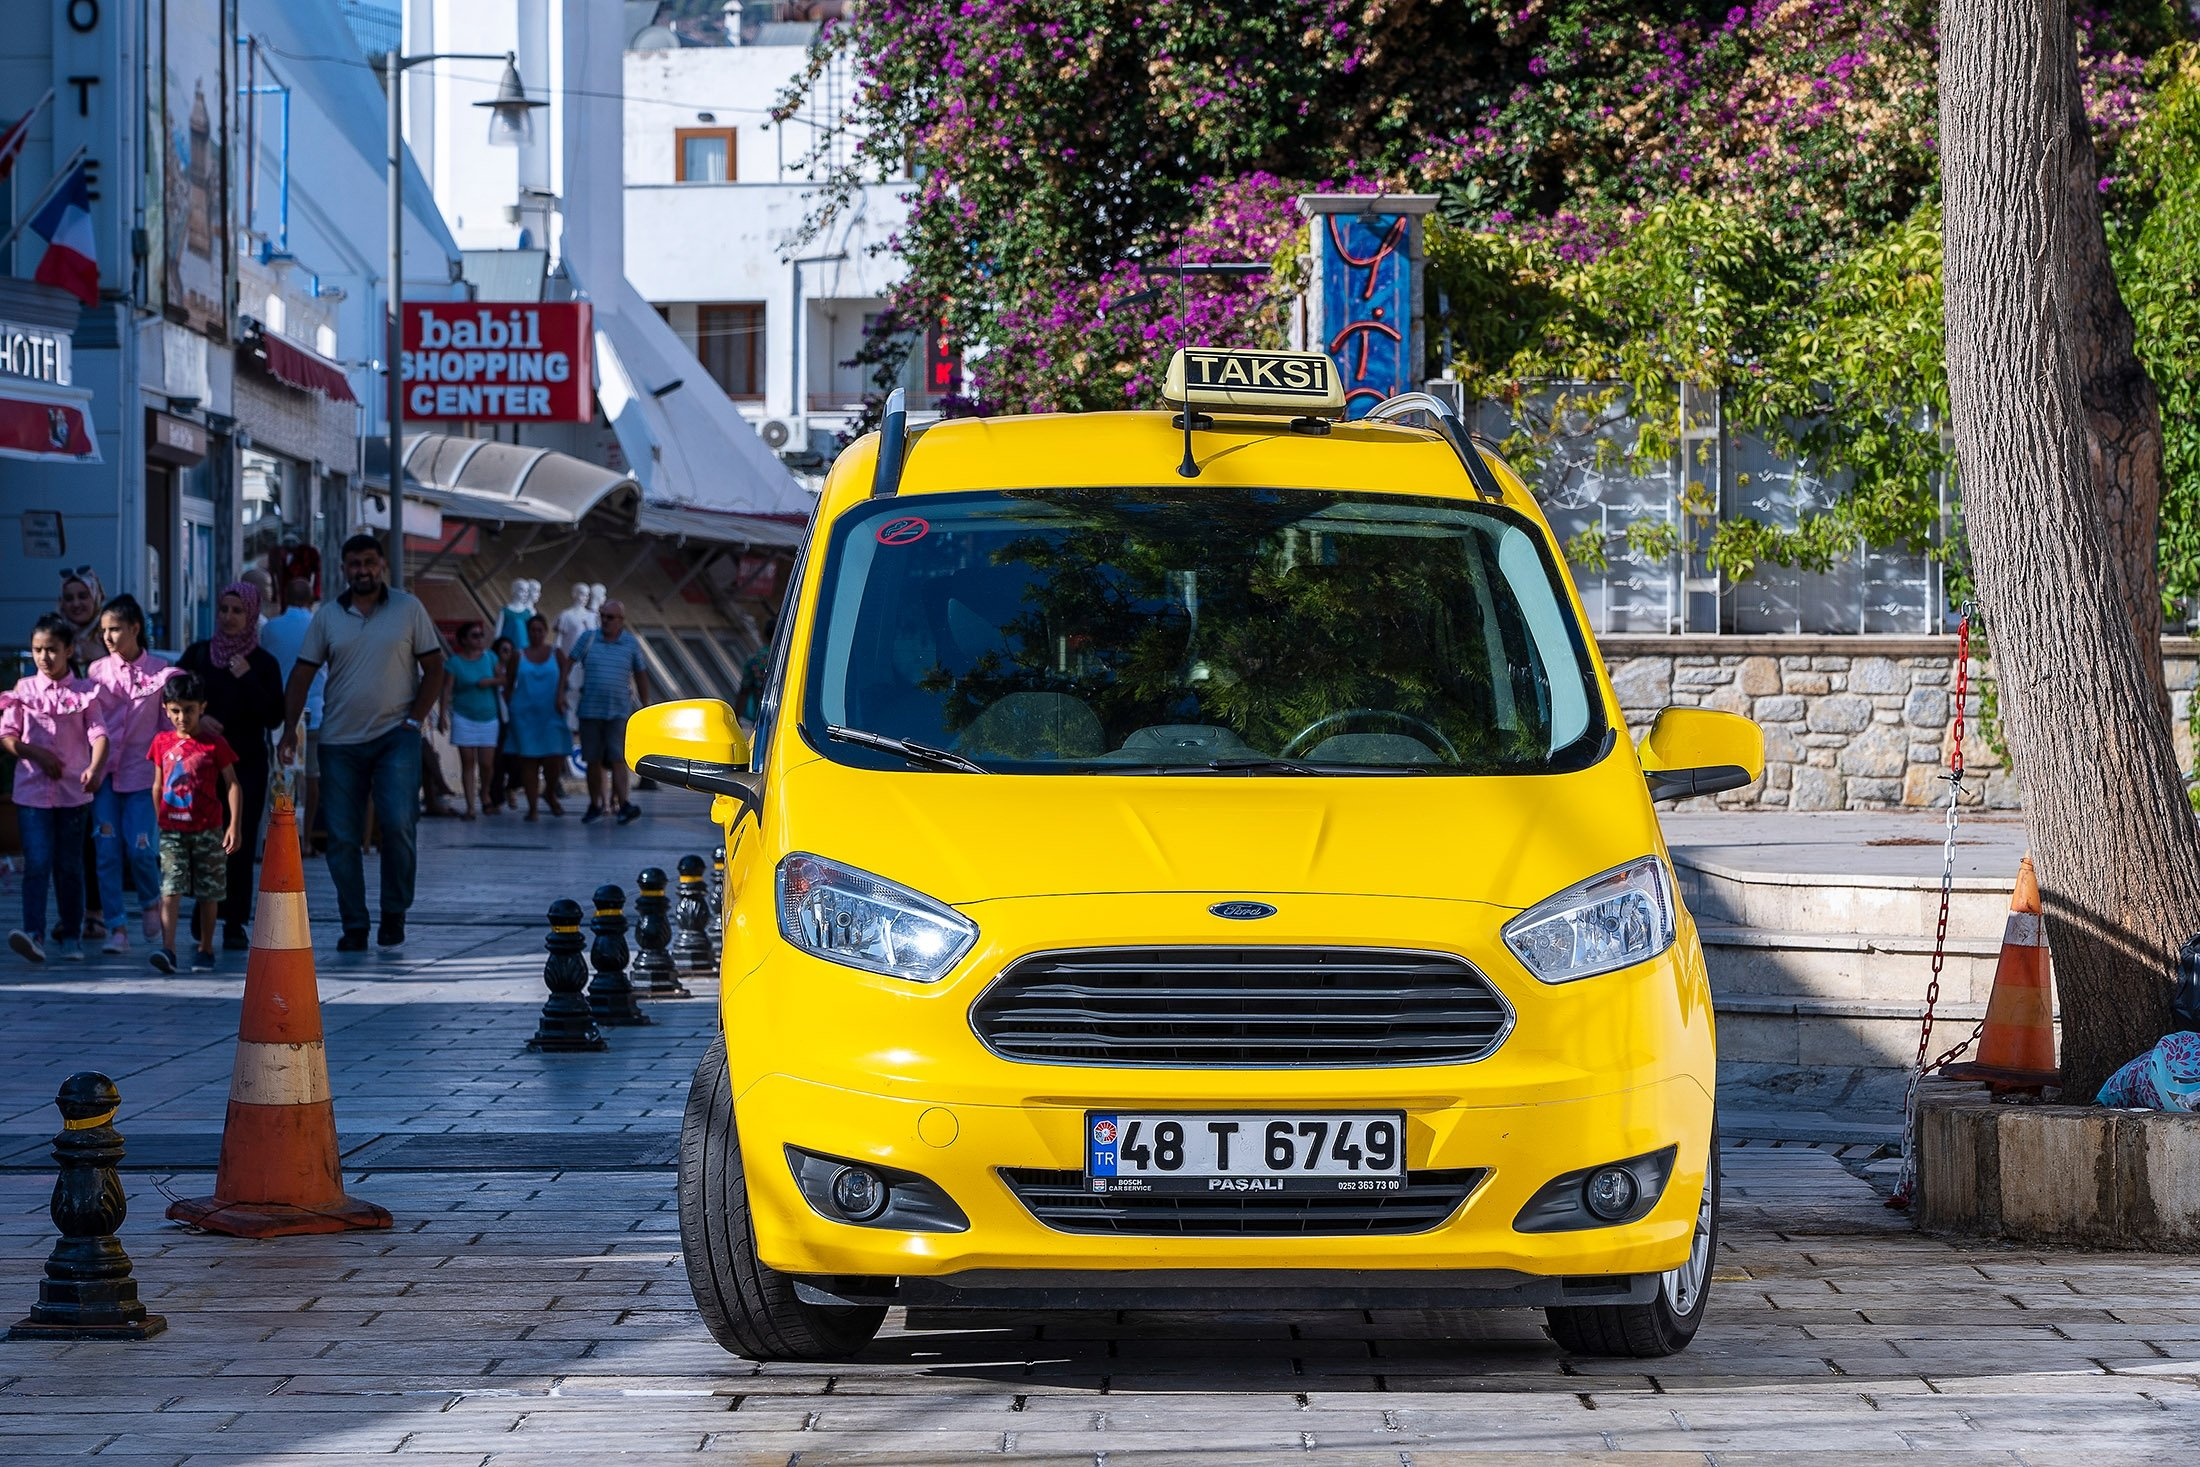 A yellow taxi car is parked on a street in the old town of Bodrum, Turkey. (Shutterstock Photo)